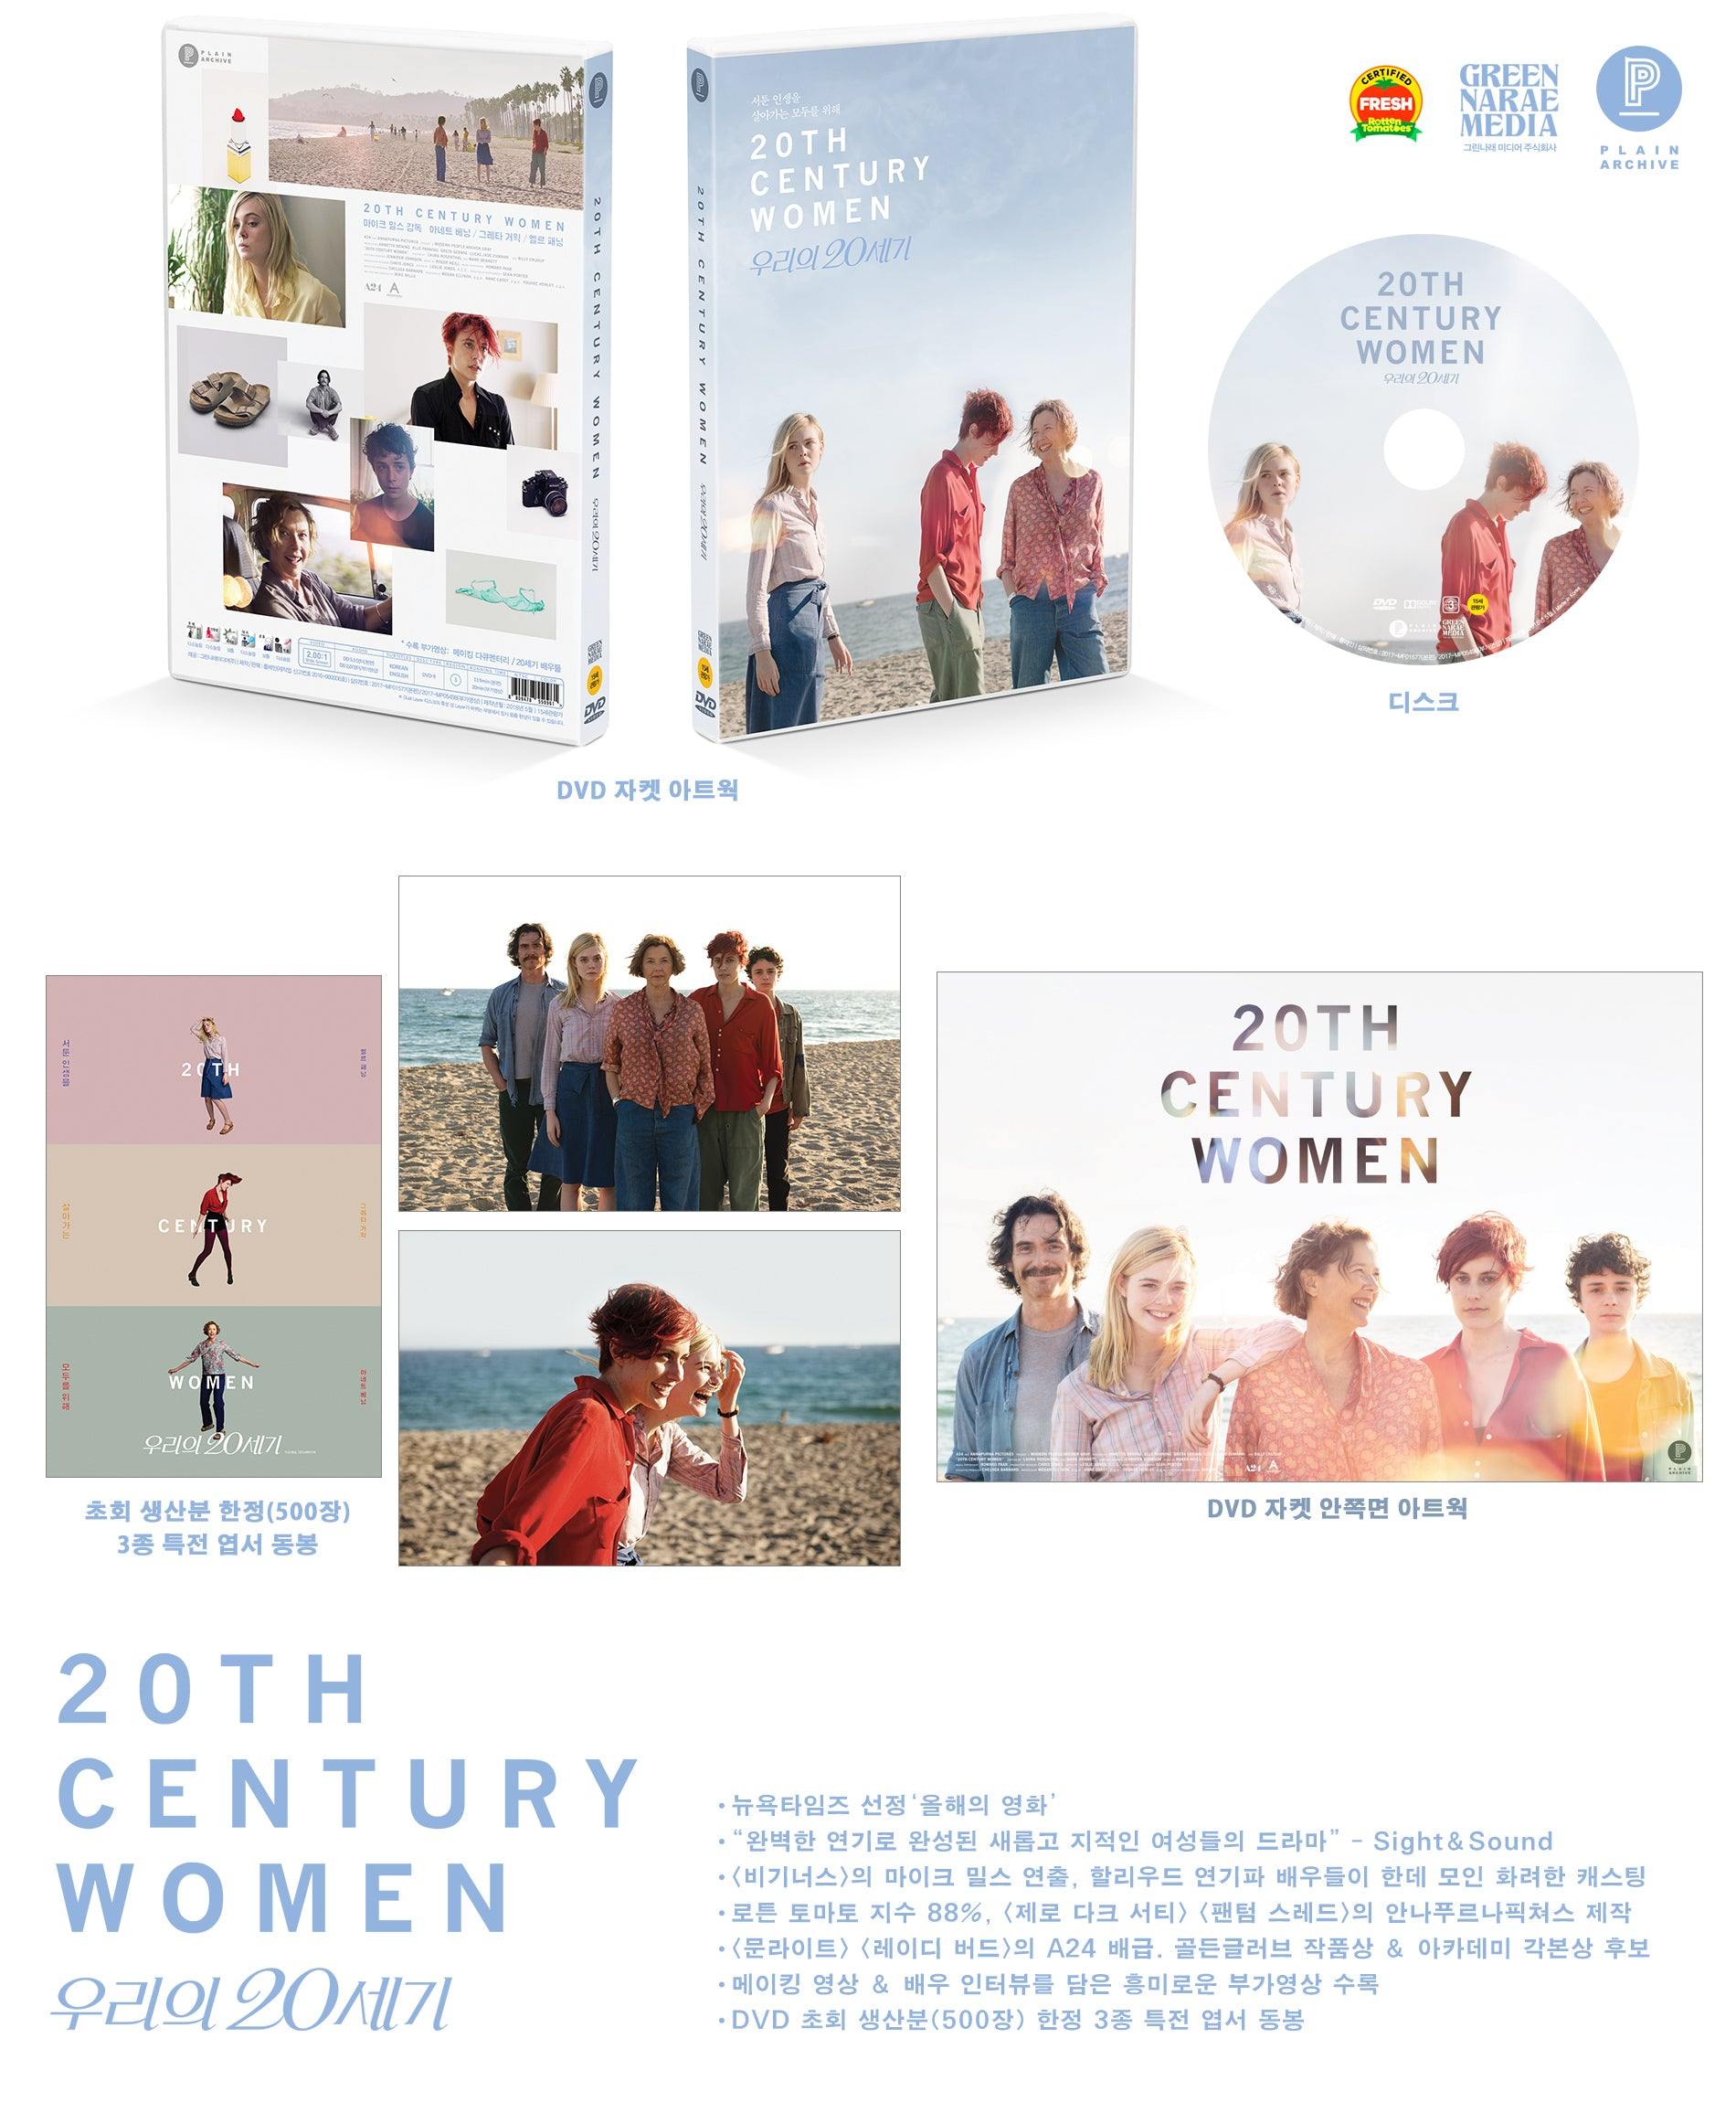 20TH CENTURY WOMEN DVD